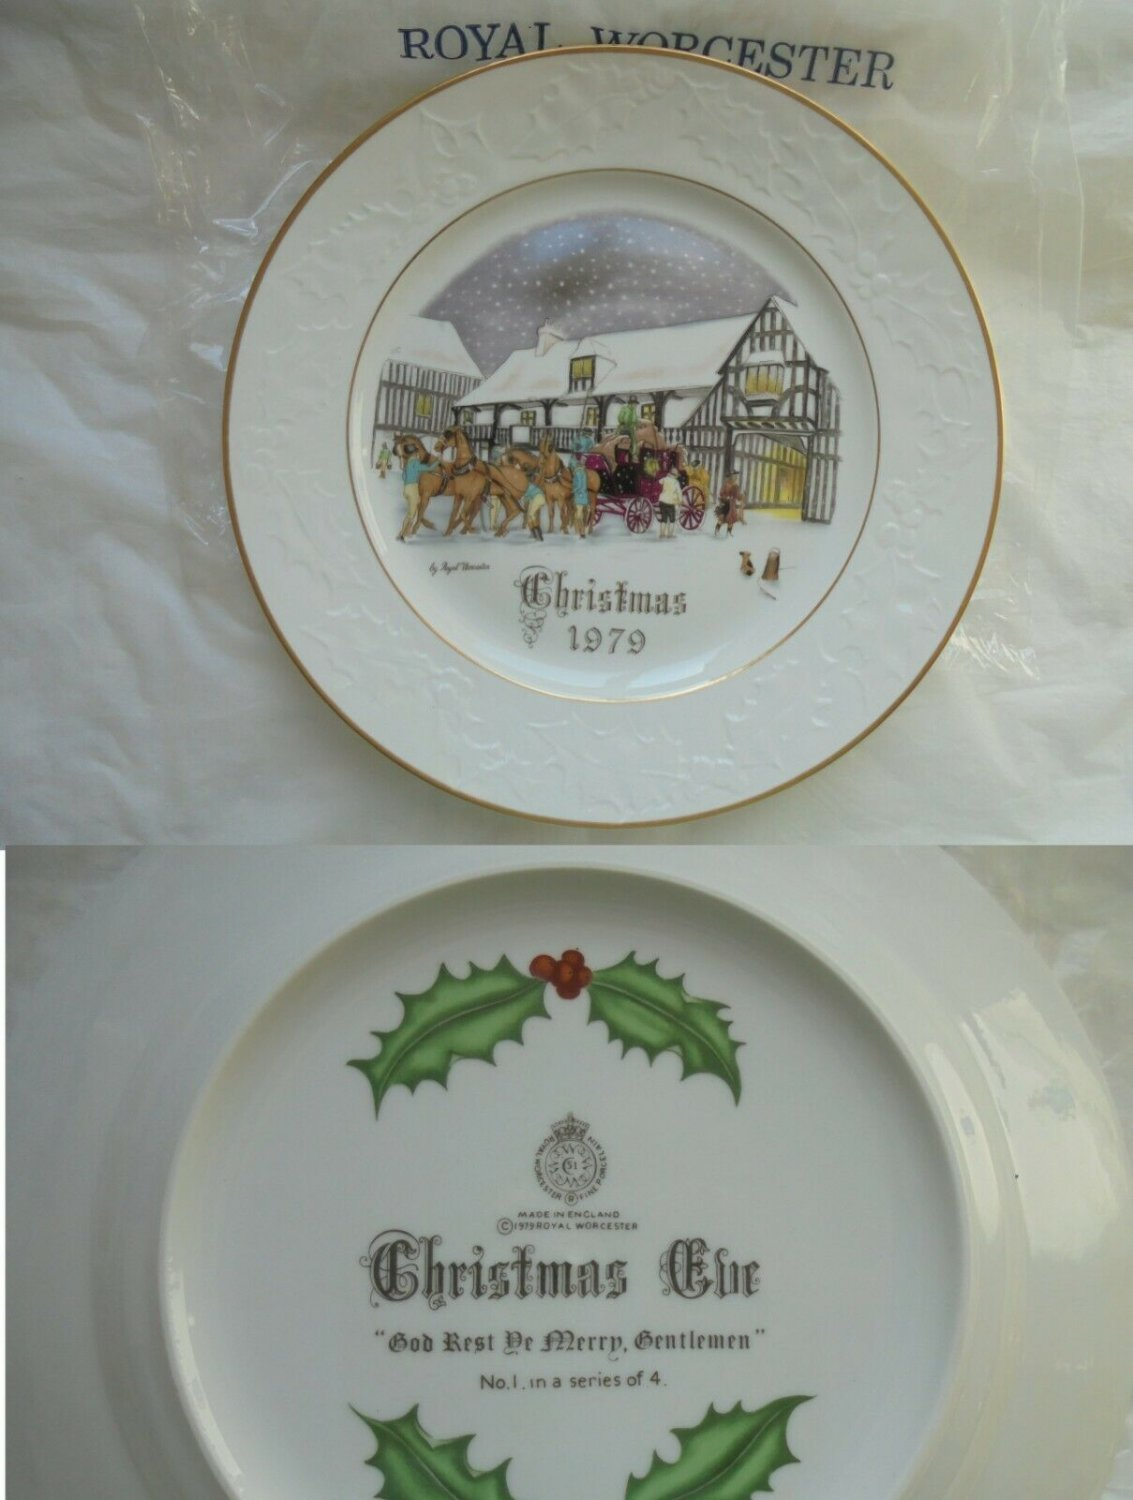 ROYAL WORCESTER collection plate dish CHRISTMAS 1979 Original New